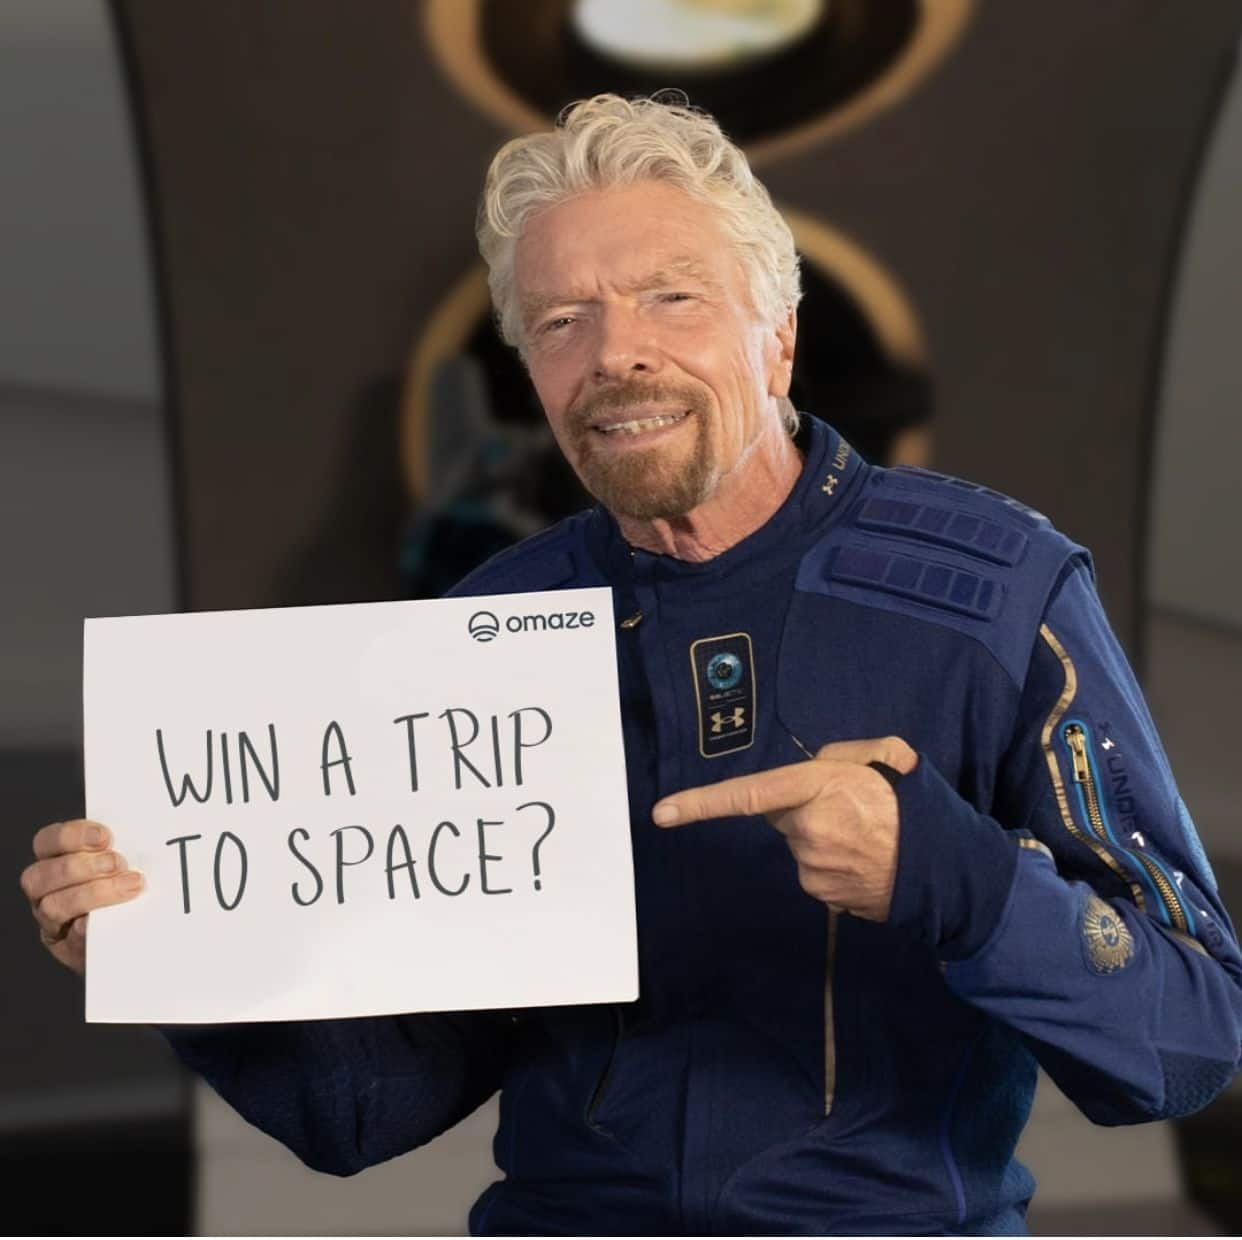 British businessman Richard Branson recently beat rival Jeff Bezos to reach the edge of space.